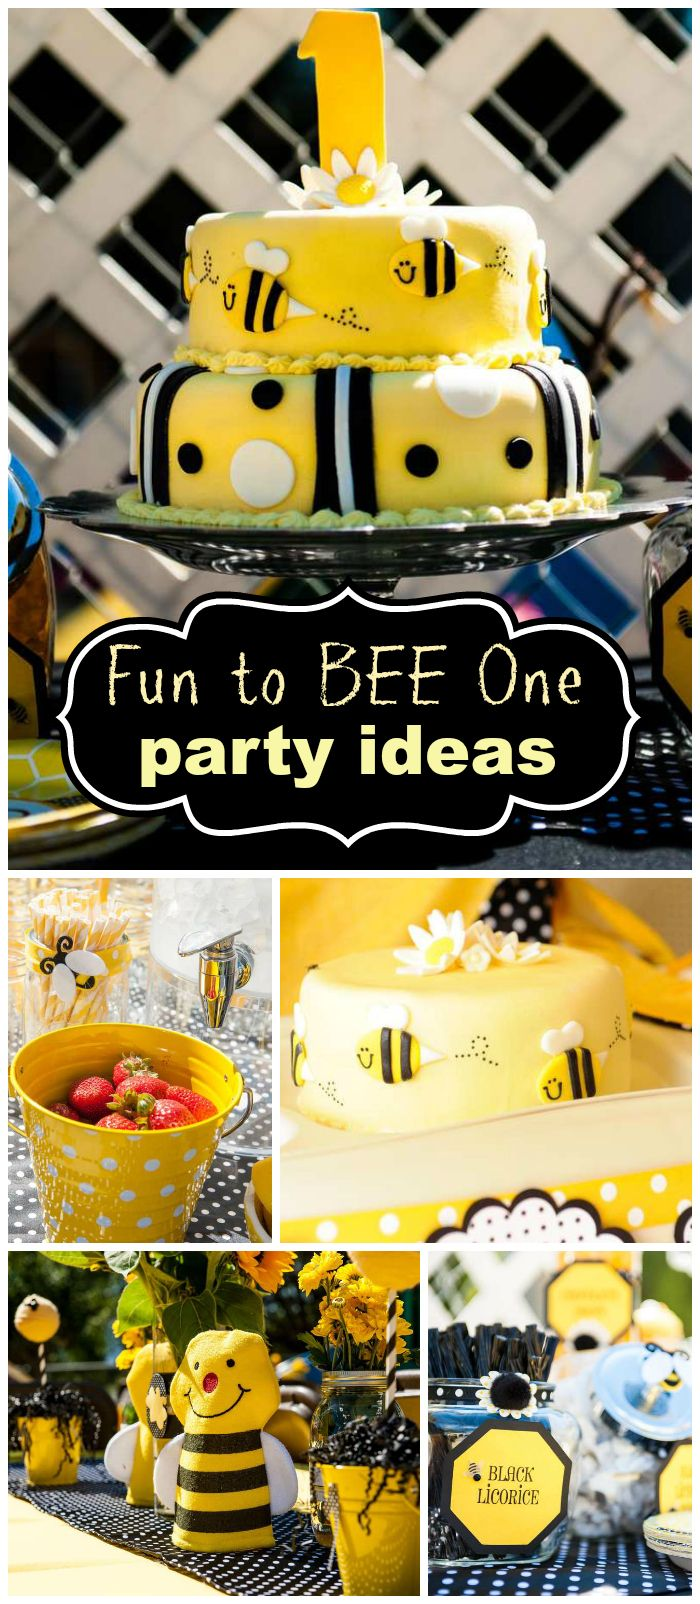 Bumble Bees Birthday Fun To BEE One